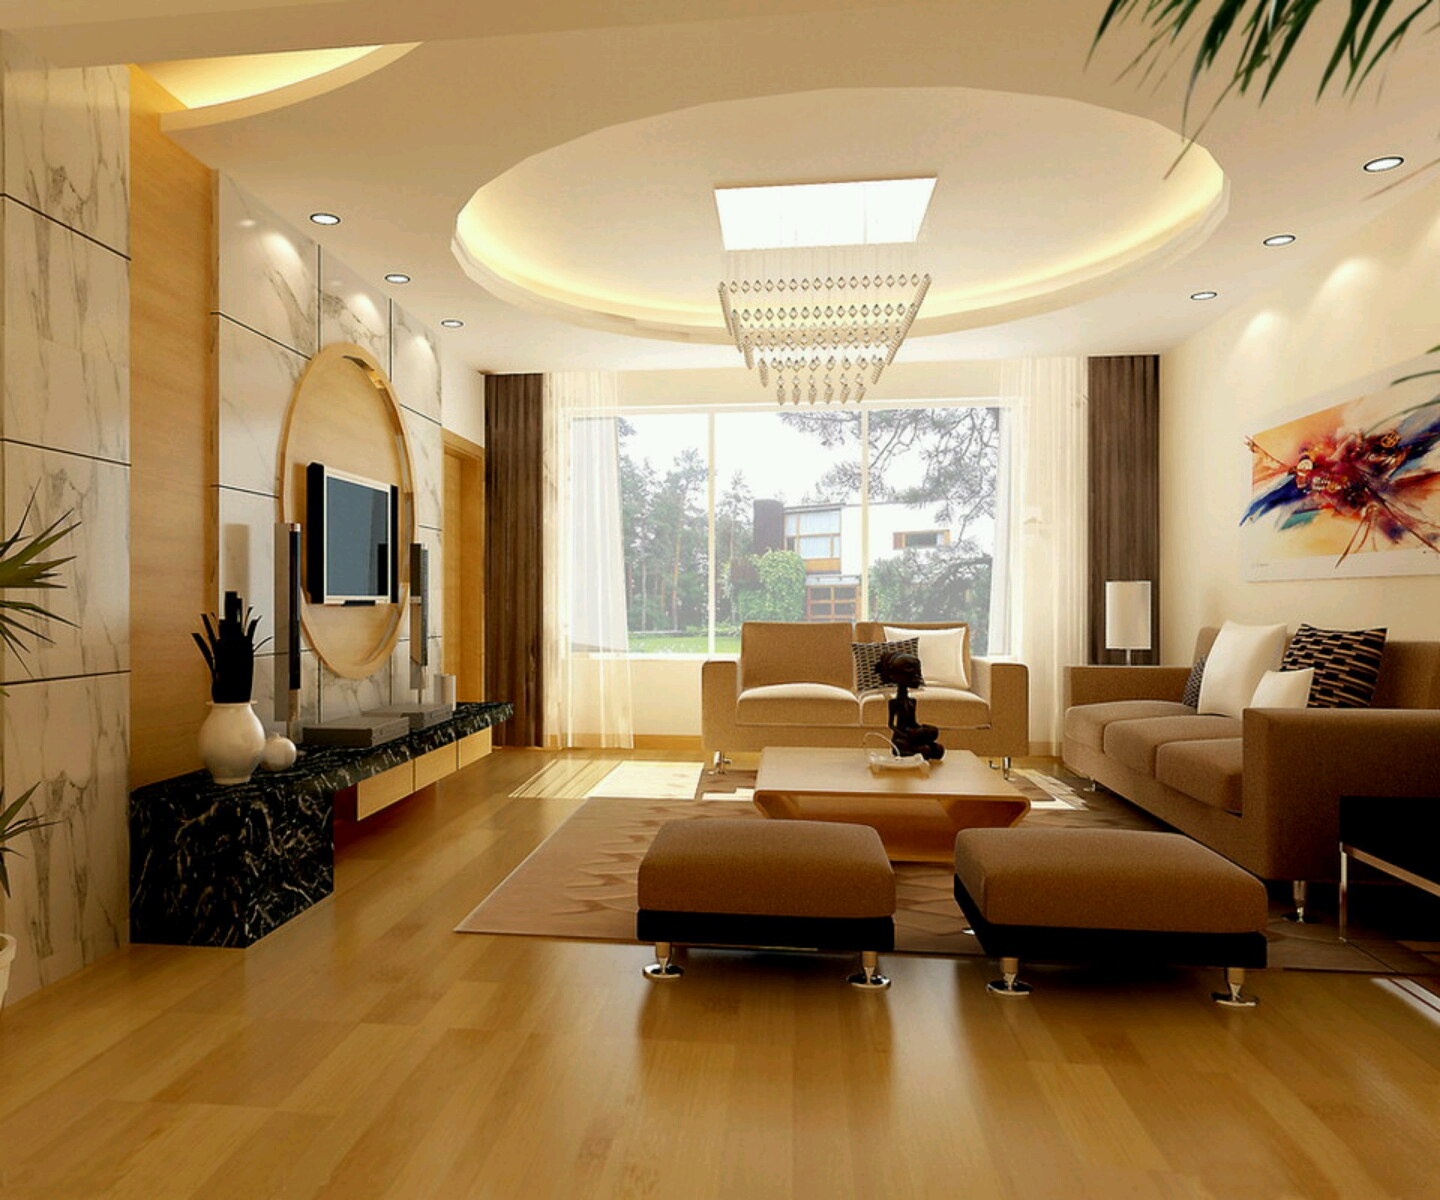 Modern interior decoration living rooms ceiling designs - Interior design ceiling living room ...